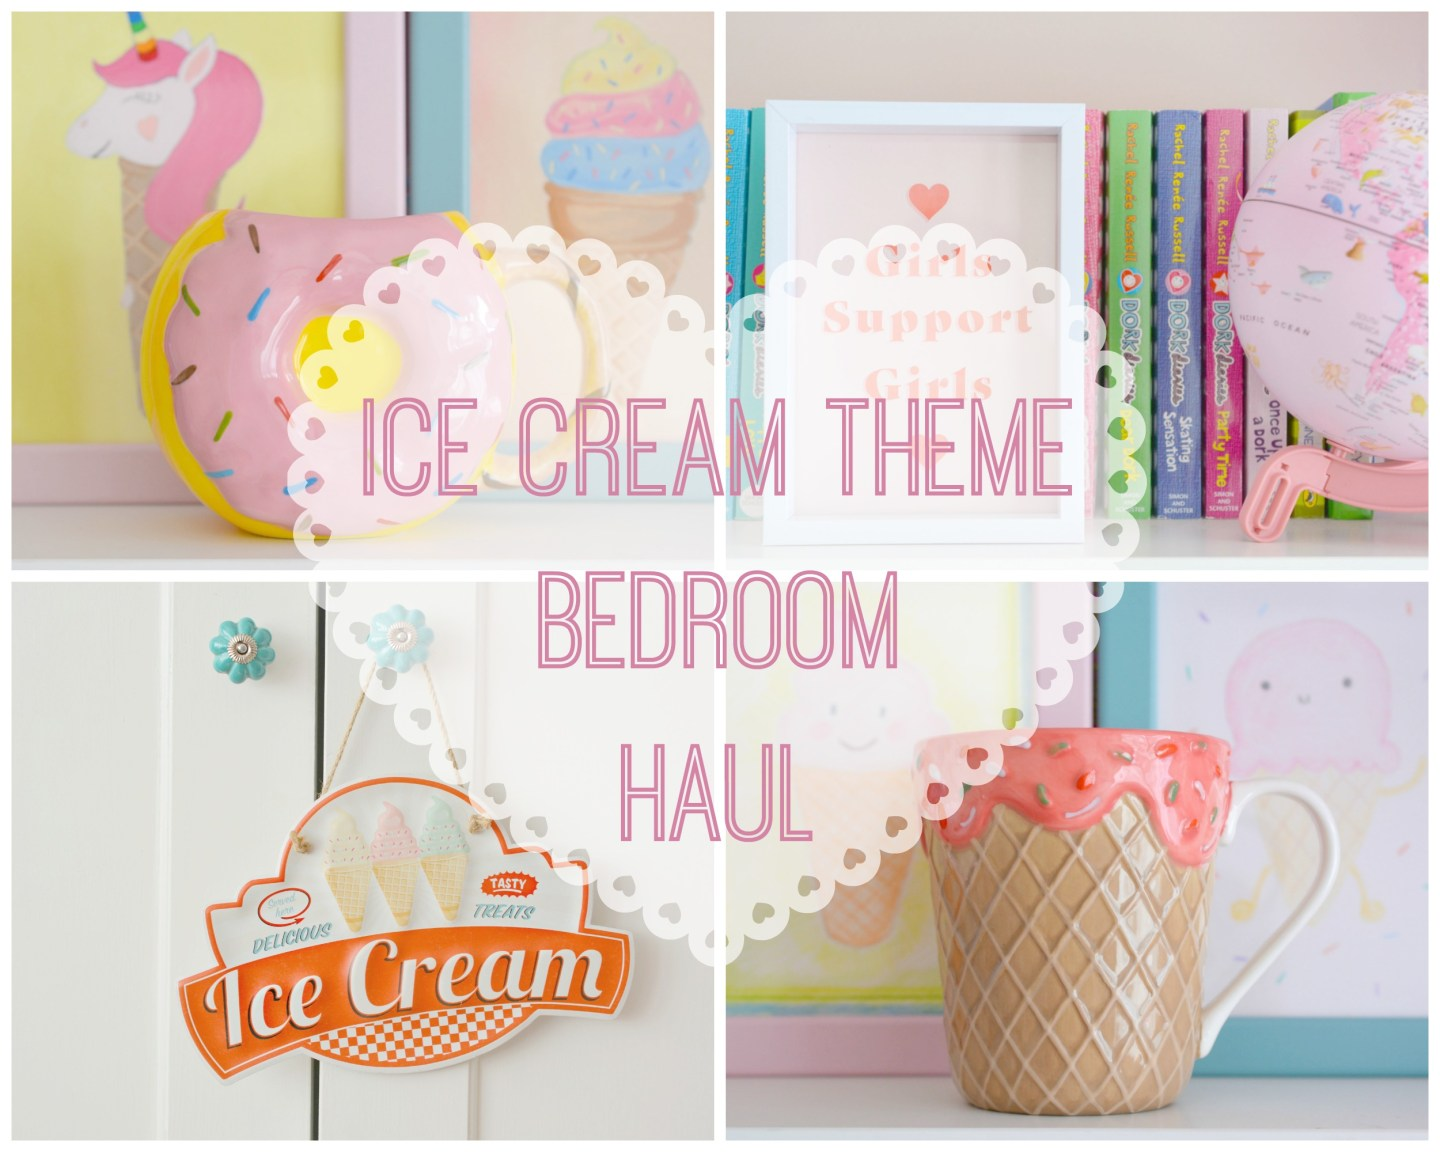 The Ice Cream Theme – Lila's Ice Cream Bedroom Haul